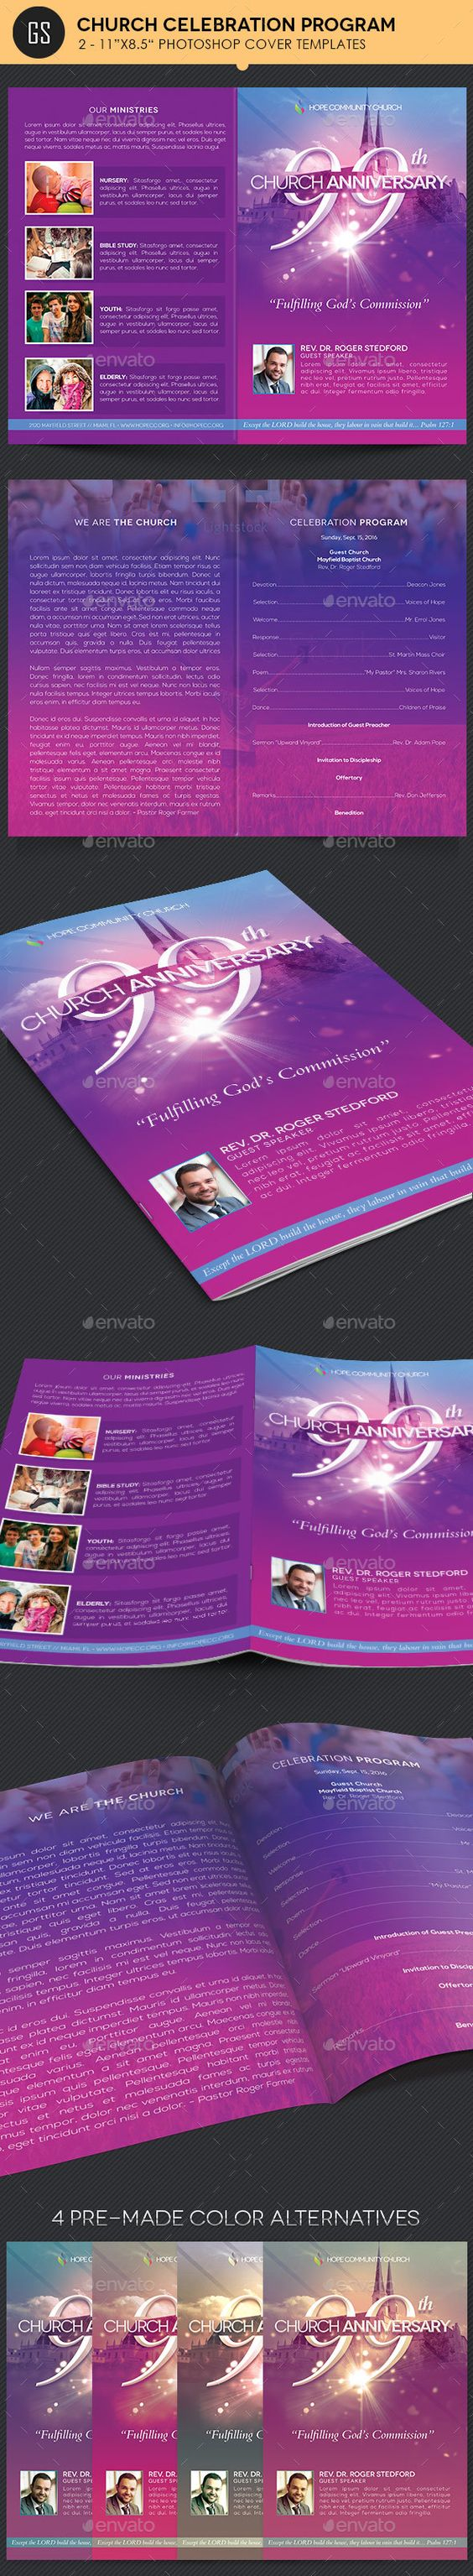 church celebration program template program template templates and celebrations. Black Bedroom Furniture Sets. Home Design Ideas